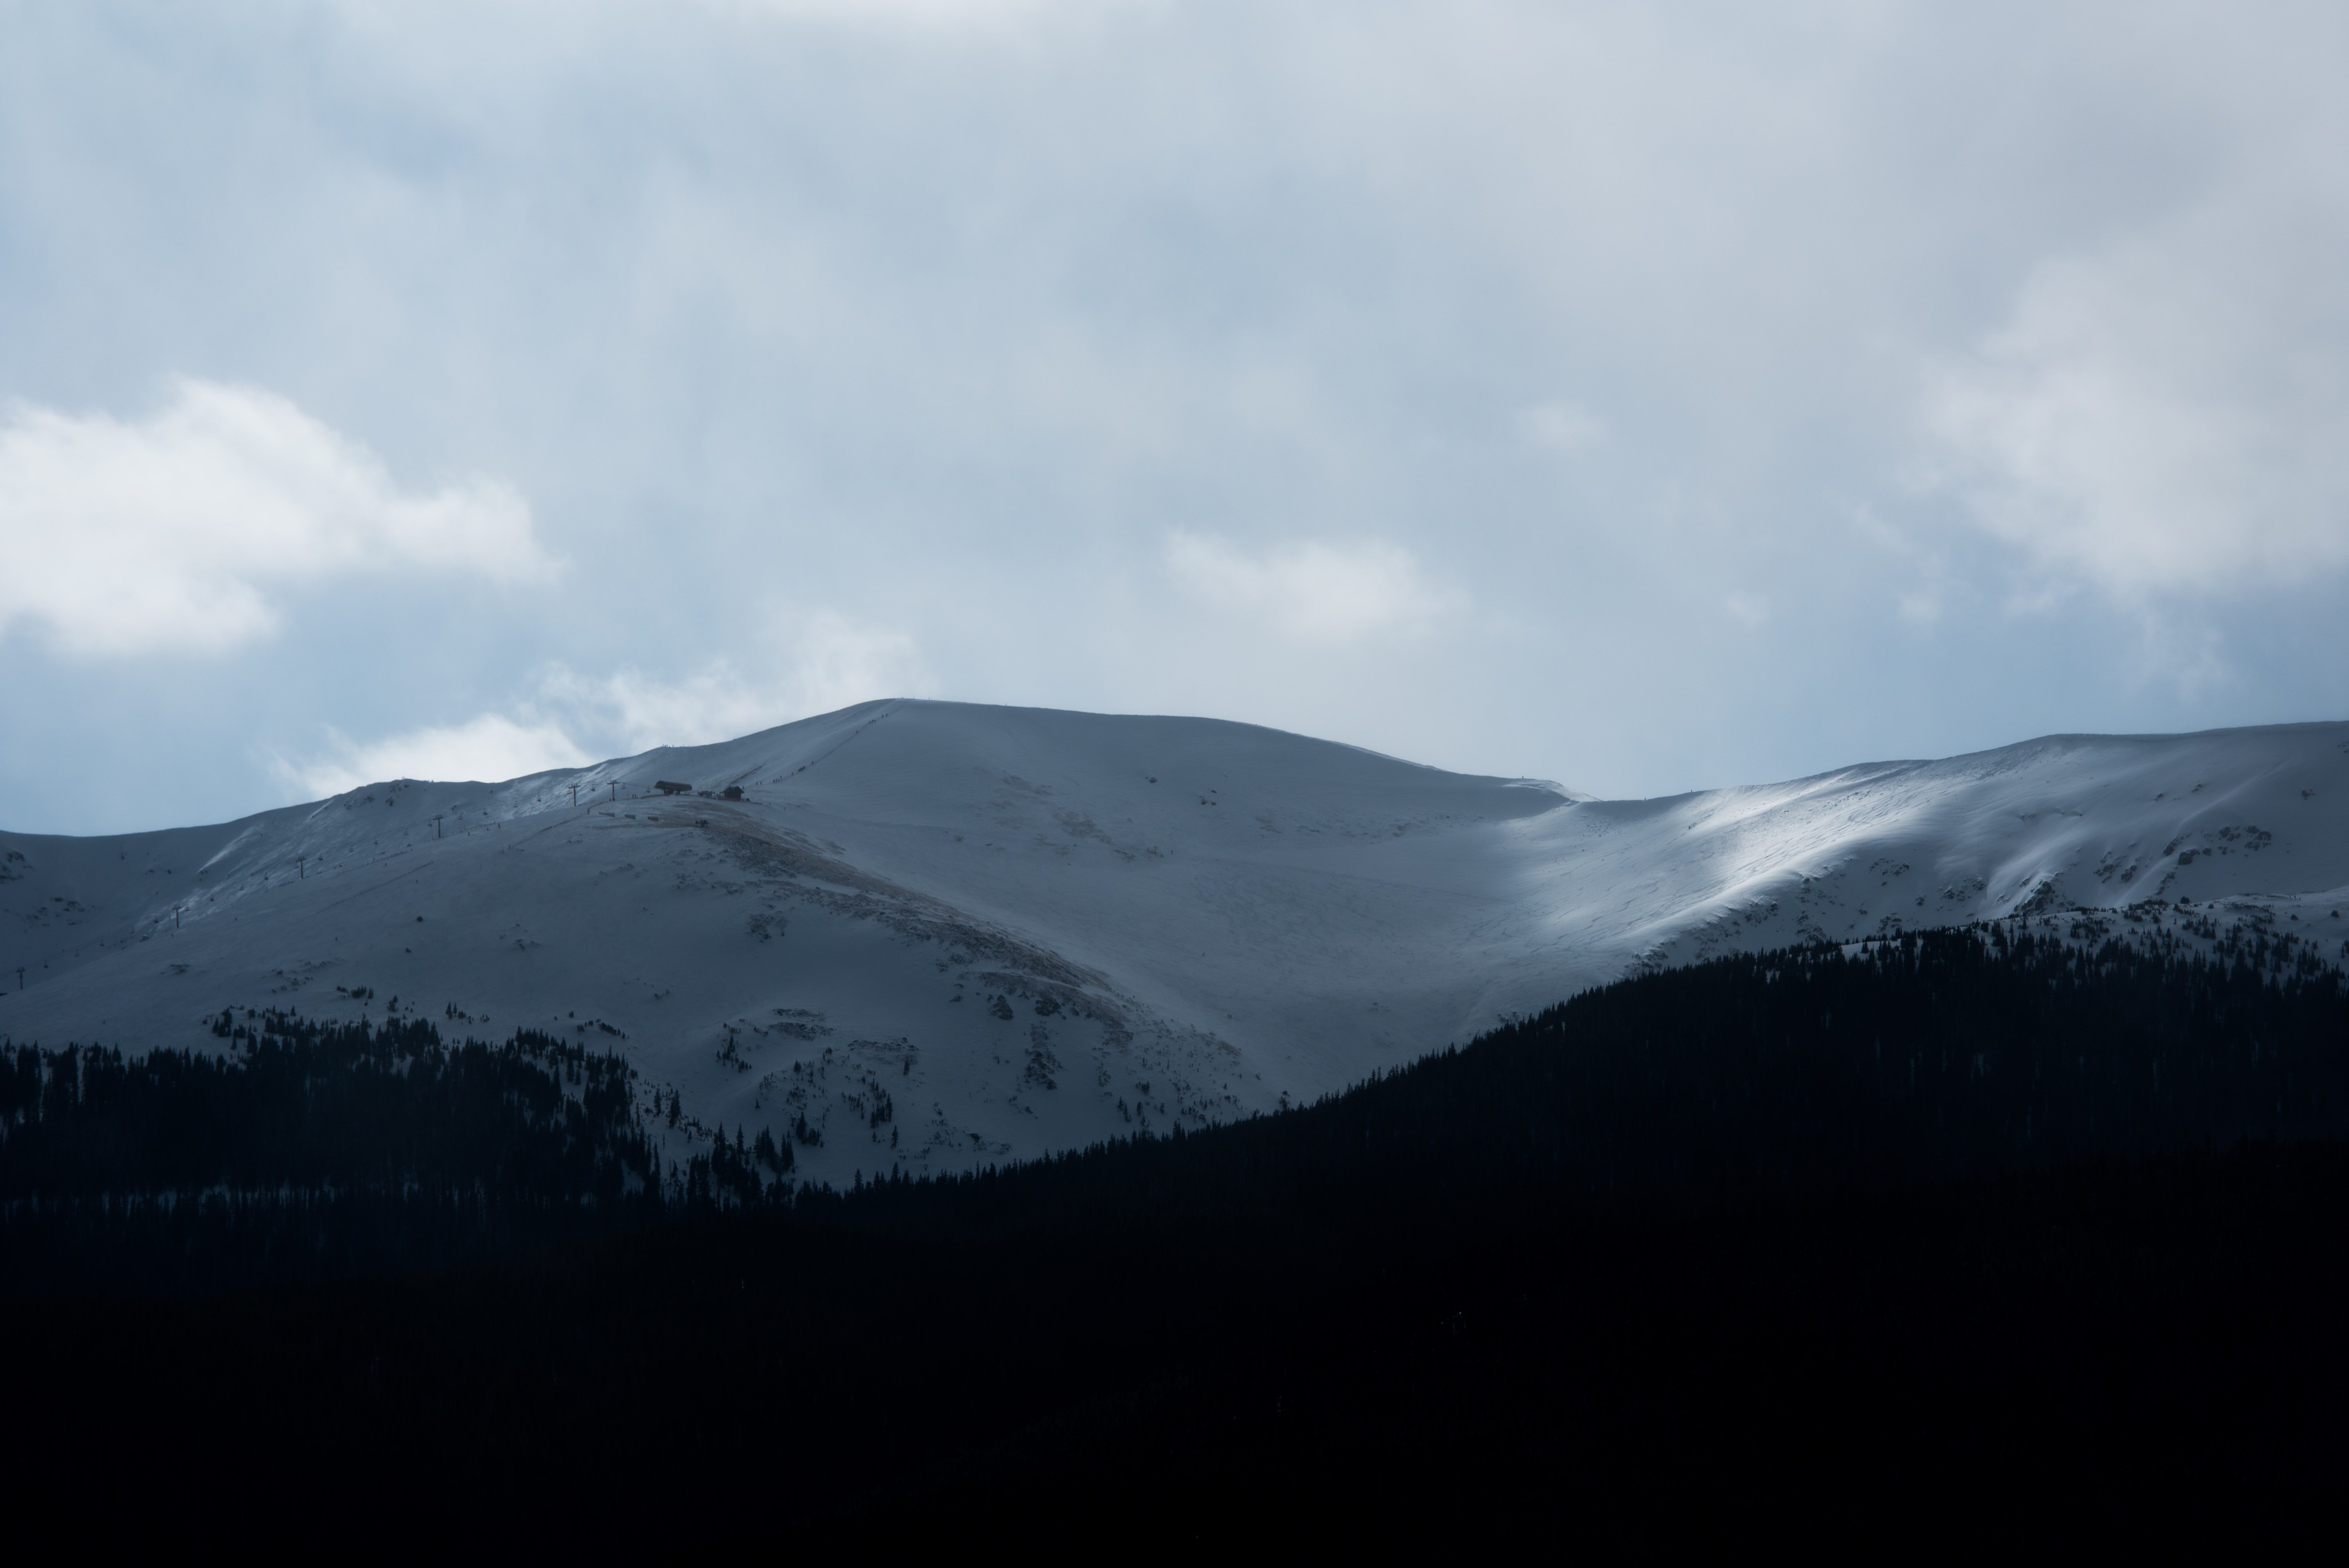 A mountain covered in snow stands tall, near the clouds